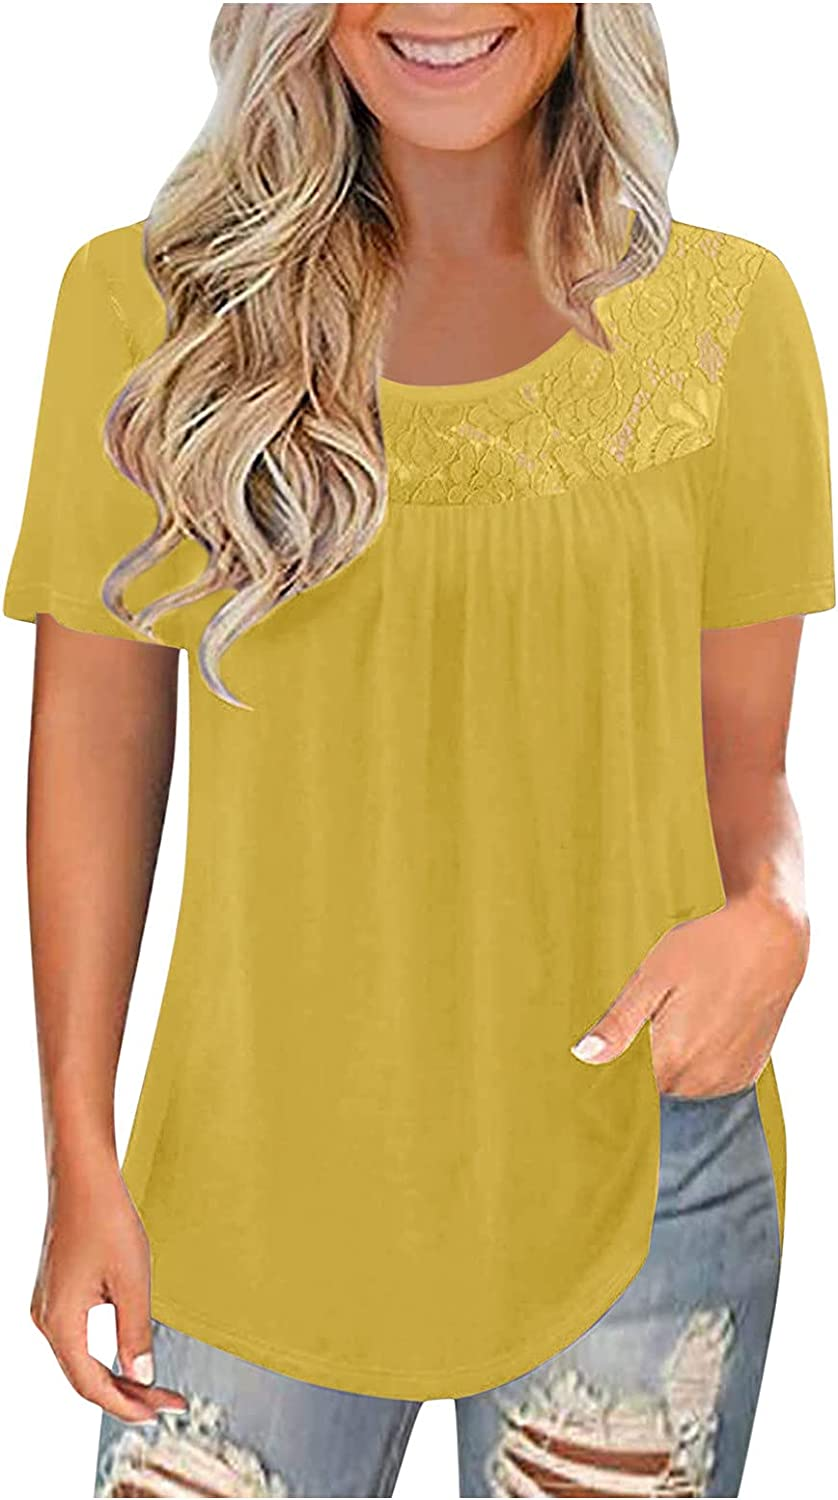 AODONG Short Sleeve Tops for Women, Women's Plus Size Summer Tops Lace Pleated Shirts Casual Loose Blouses Tops Tunics